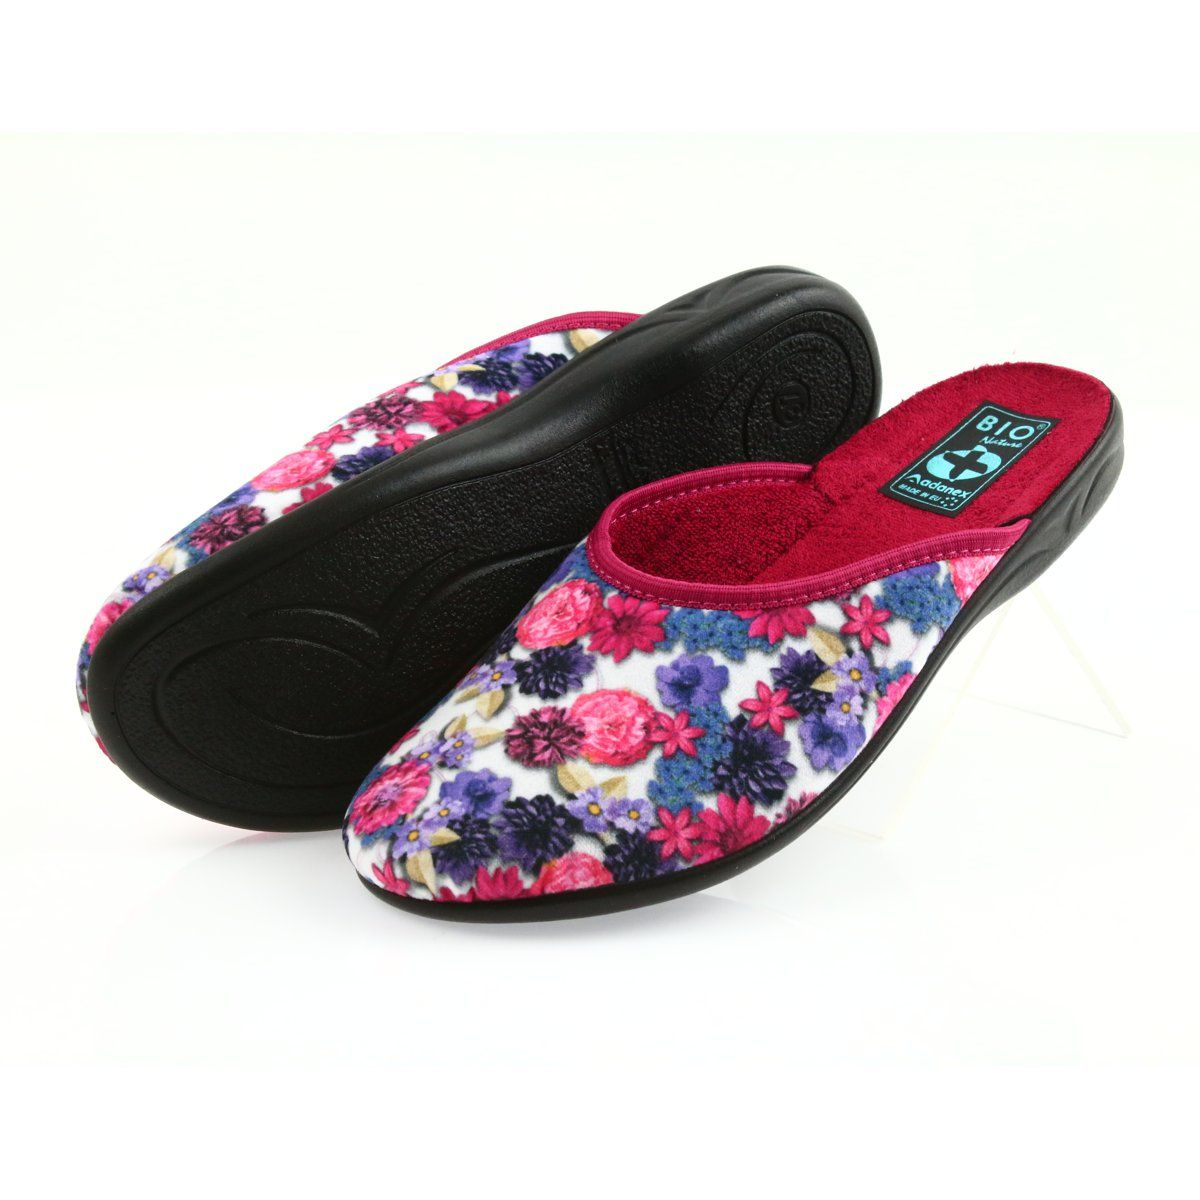 Slippers Velor Adanex 23773 Multicolored Slippers Womens Slippers Shoes